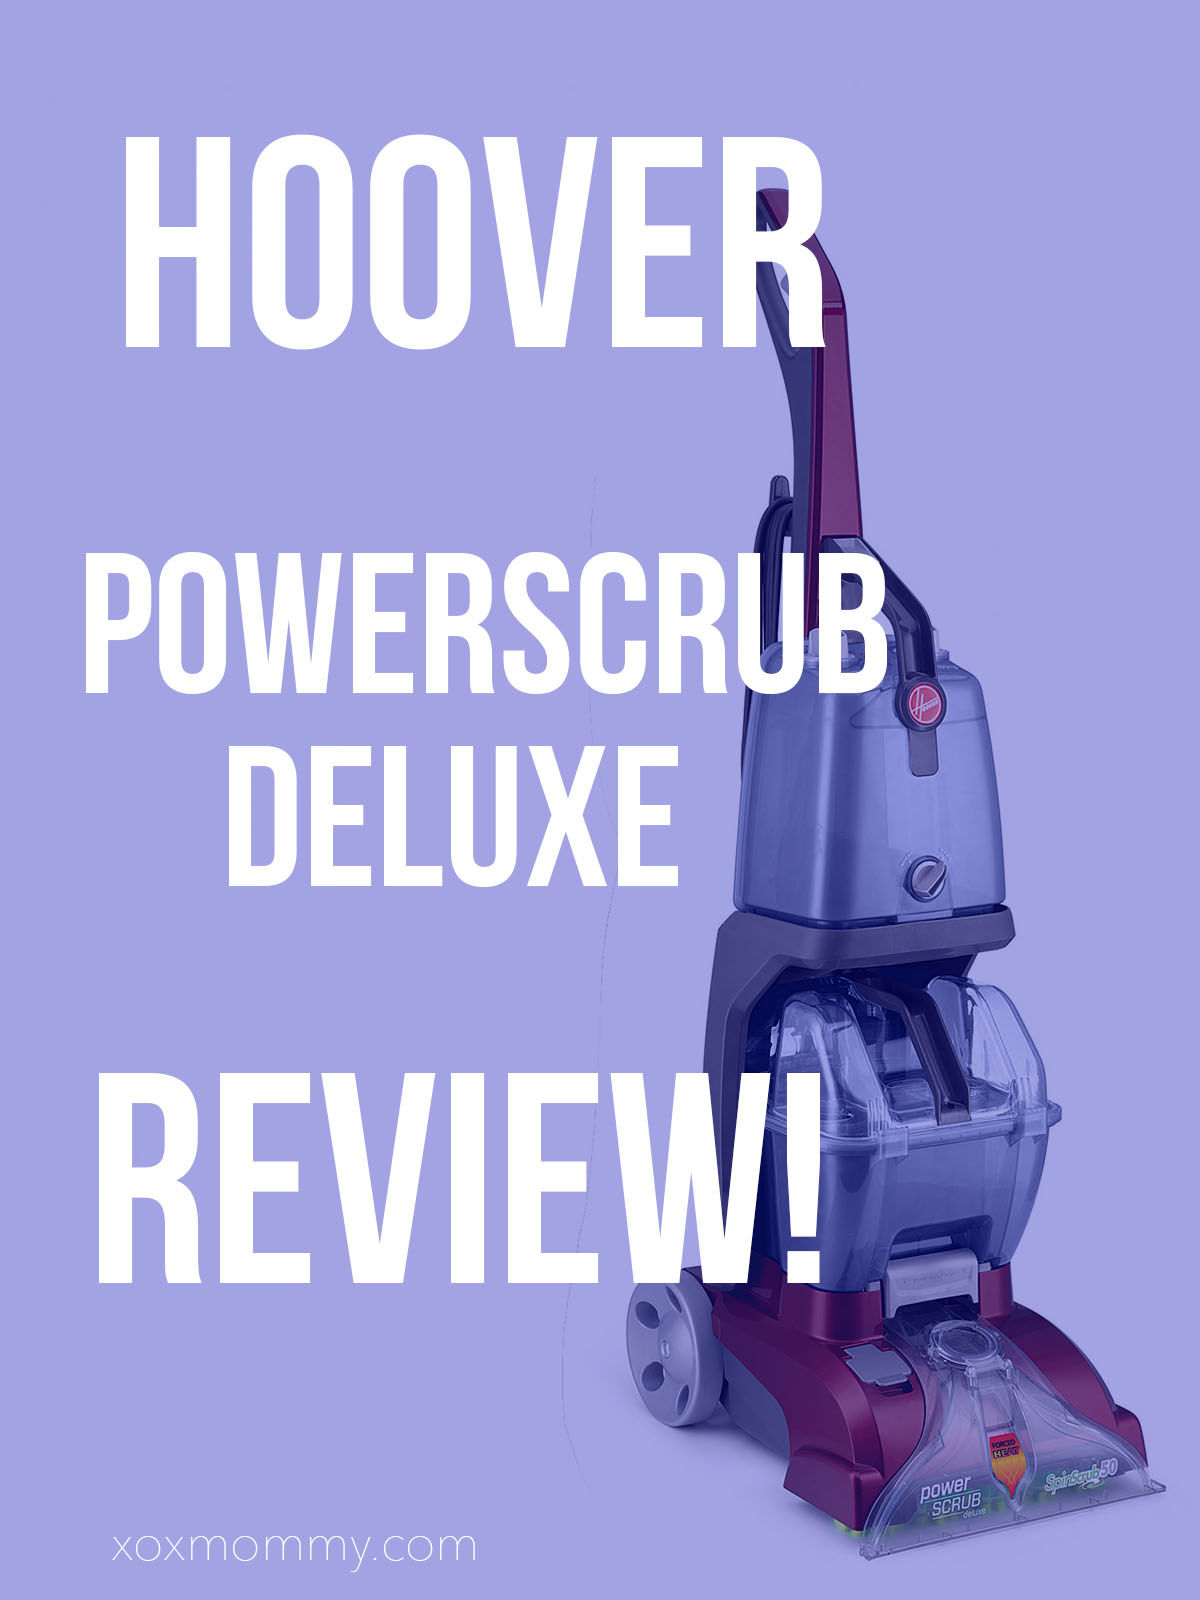 Blood Pressure Stabilized: Hoover PowerScrub Deluxe Review